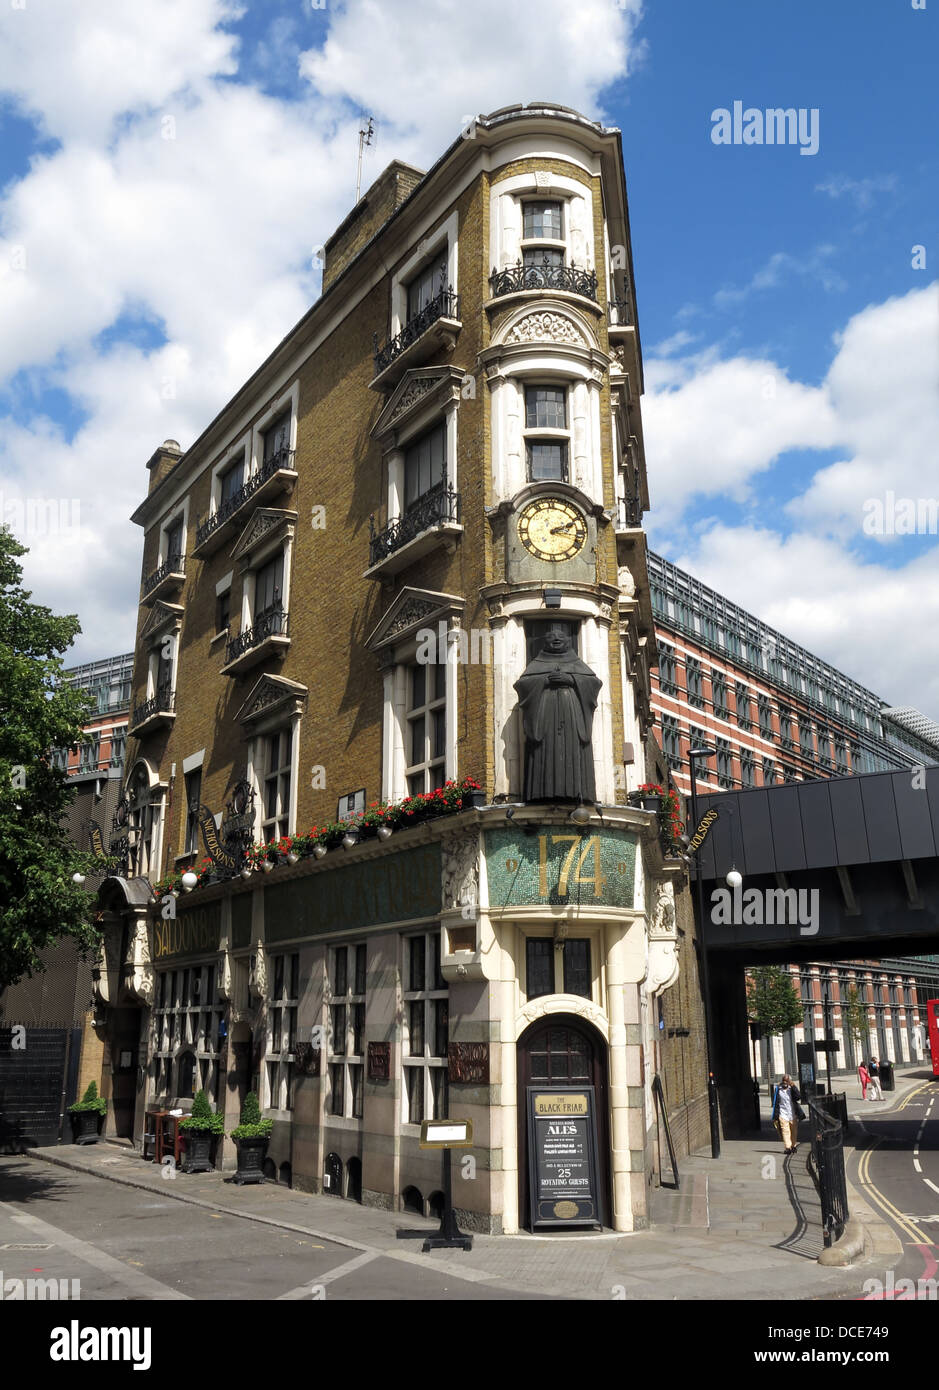 public,house,pub,pubs,bar,bars,Blackfriars,North,London,England,UK,classic,gin,palace,palaces,drinking,beers,ales,CAMRA,in,art,deco,artdeco,art-deco,nicolsons,perfect,art,nouveau,art,John,Betjeman,Nicholsons,Nicholsons,brewing,history,heritage,brewary,brewery,traffic,light,lights,clock,summer,Gotonysmith,tourist,tourism,drinking,tour,tours,of,around,famous,pubs,bars,EC4V,4E,EC4V4E,building,architecture,victorian,pubs,bars,of,London,classic,tourist,attraction,travel,vacation,Buy Pictures of,Buy Images Of,Pubs Of London,must see